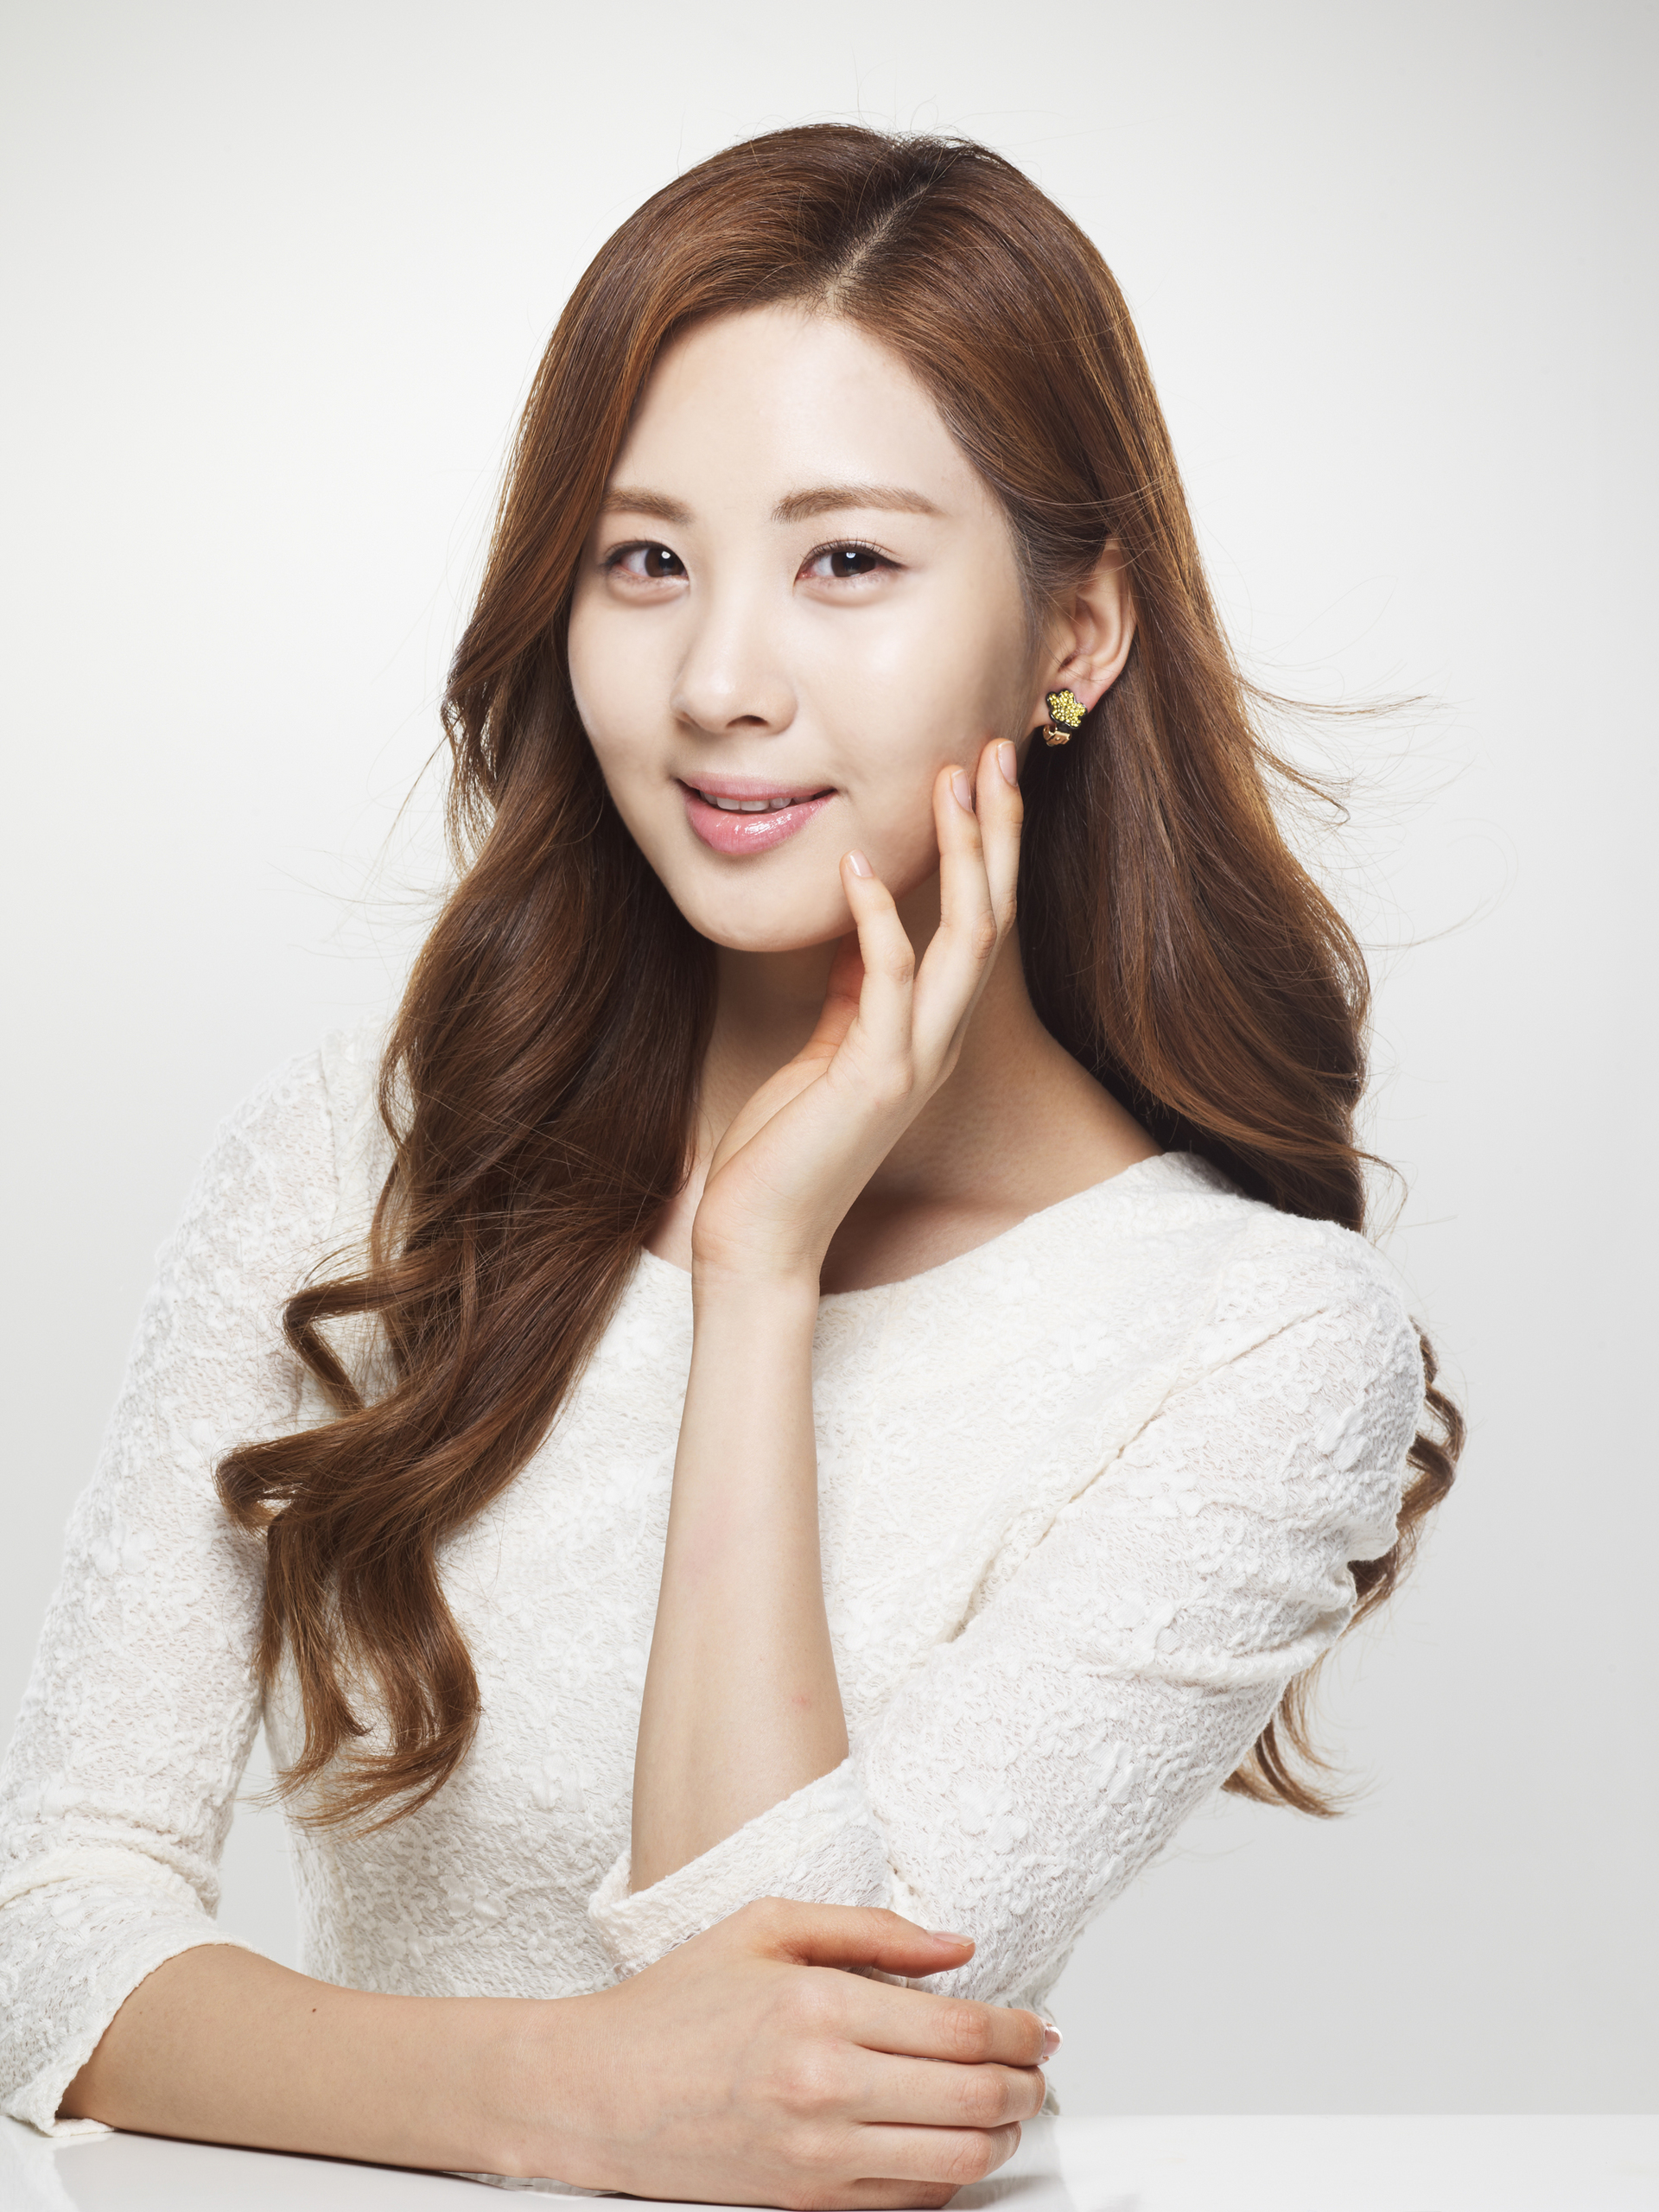 Seo Hyun The Face Shop - Girls' Generation Seo Yuyul Photo ...